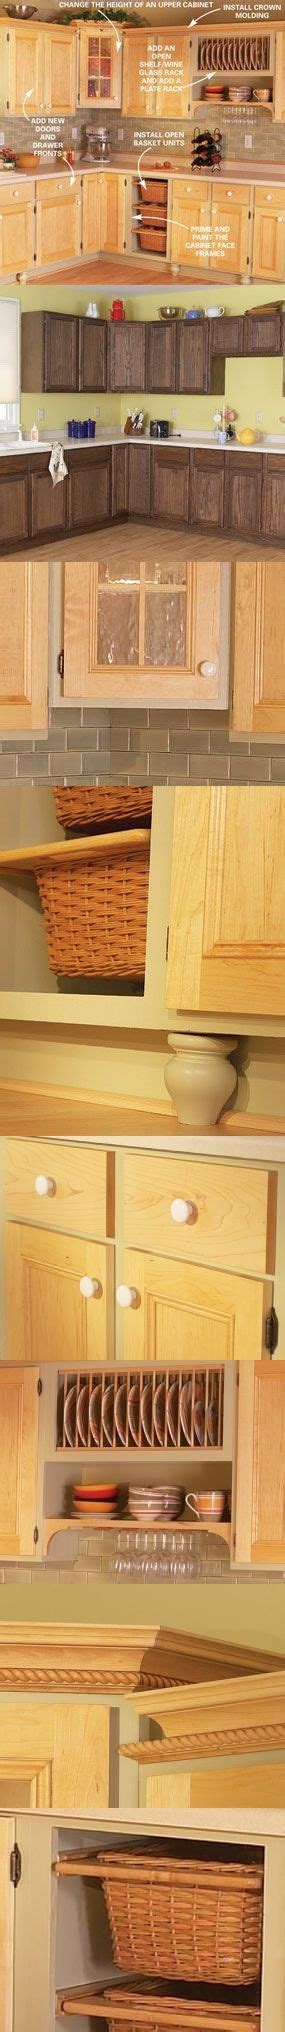 Kitchen Cabinet Facelift Ideas 124 Best Images About The Kitchen On Pinterest The Family Handyman Cabinets And Clutter